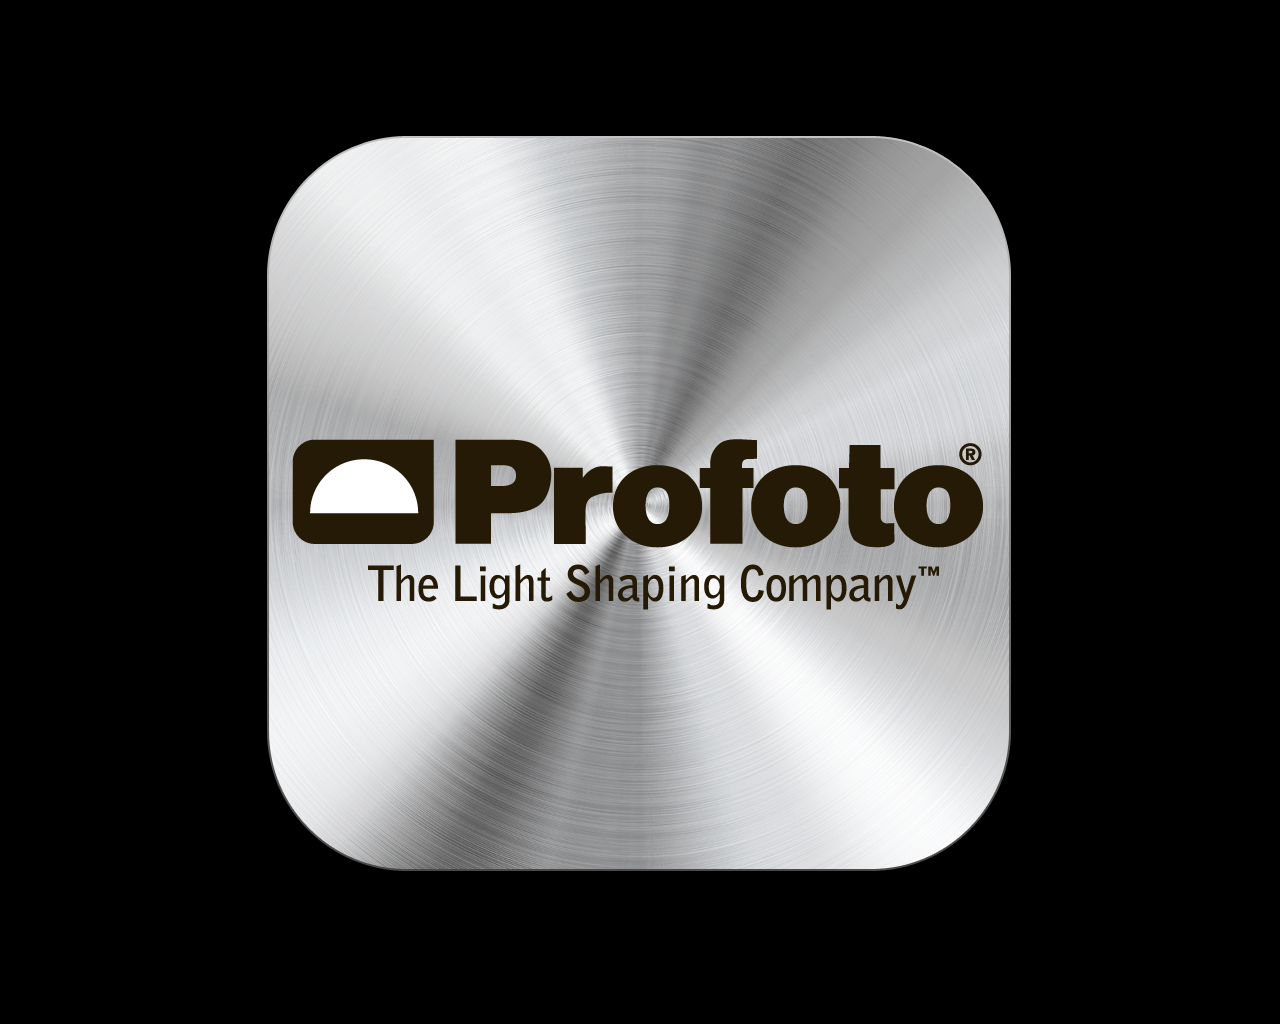 Profoto Intro samples